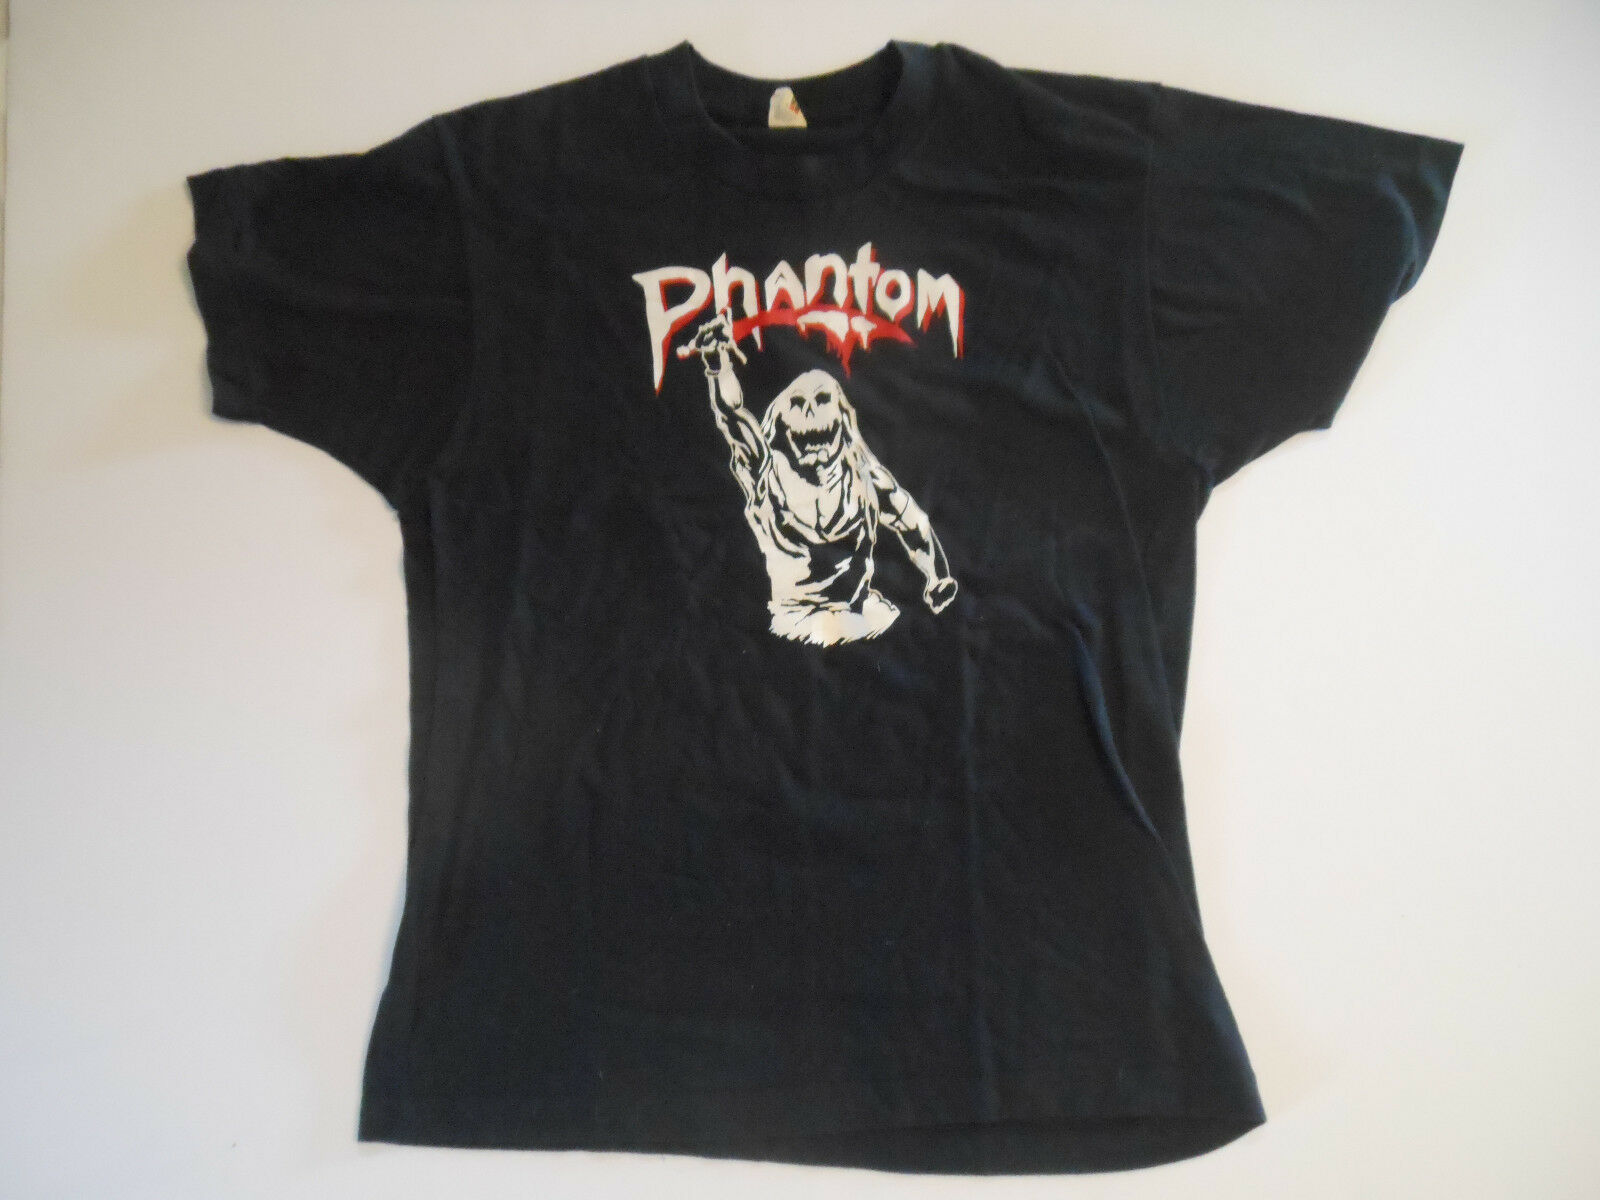 Phantom Don't care tour shirt Größe large